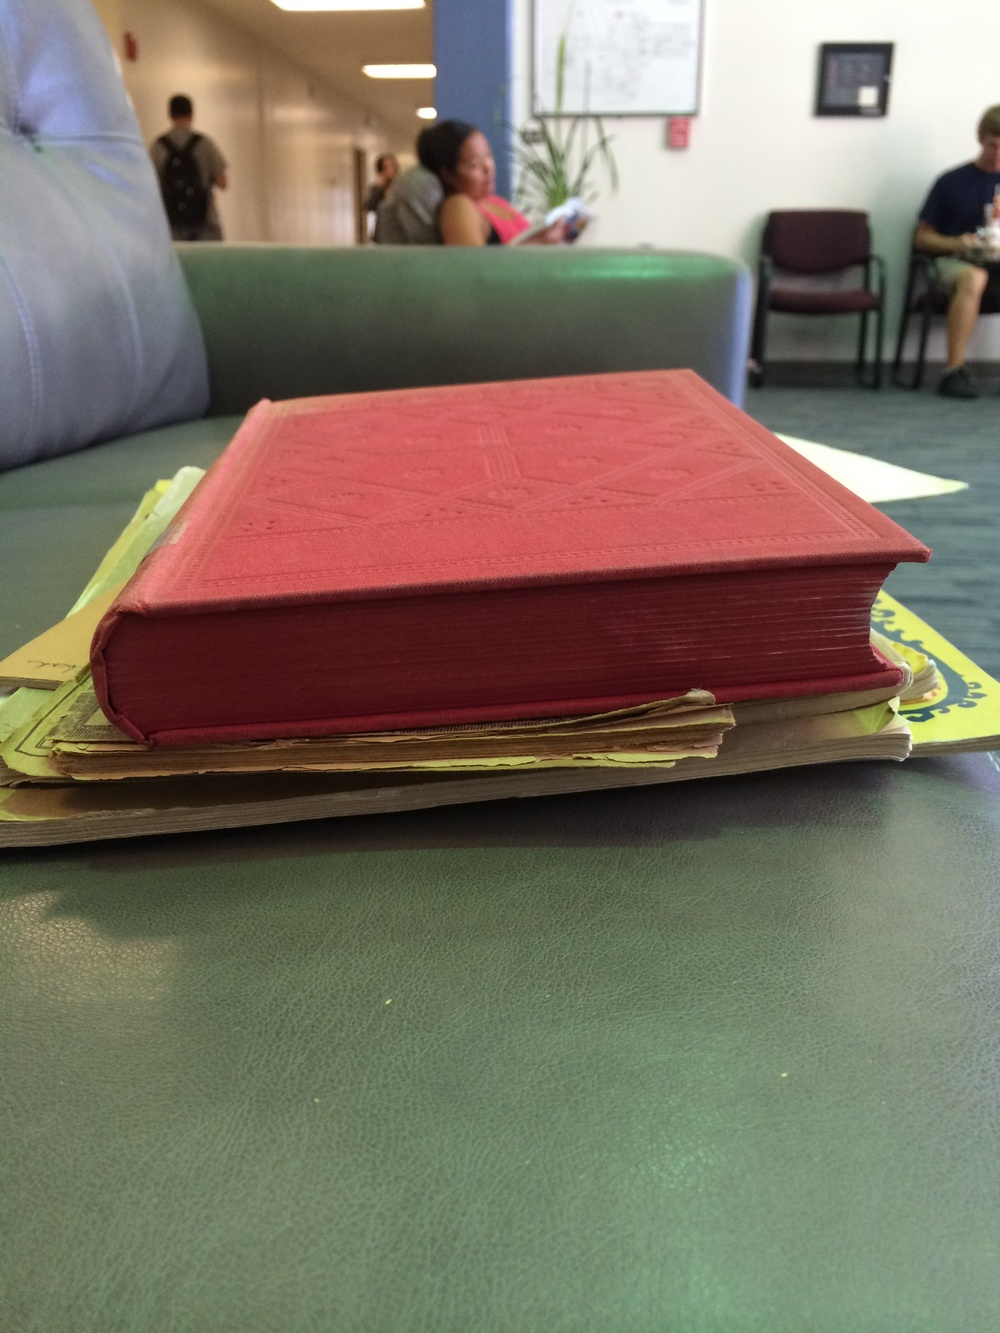 Even the paper edge is red.